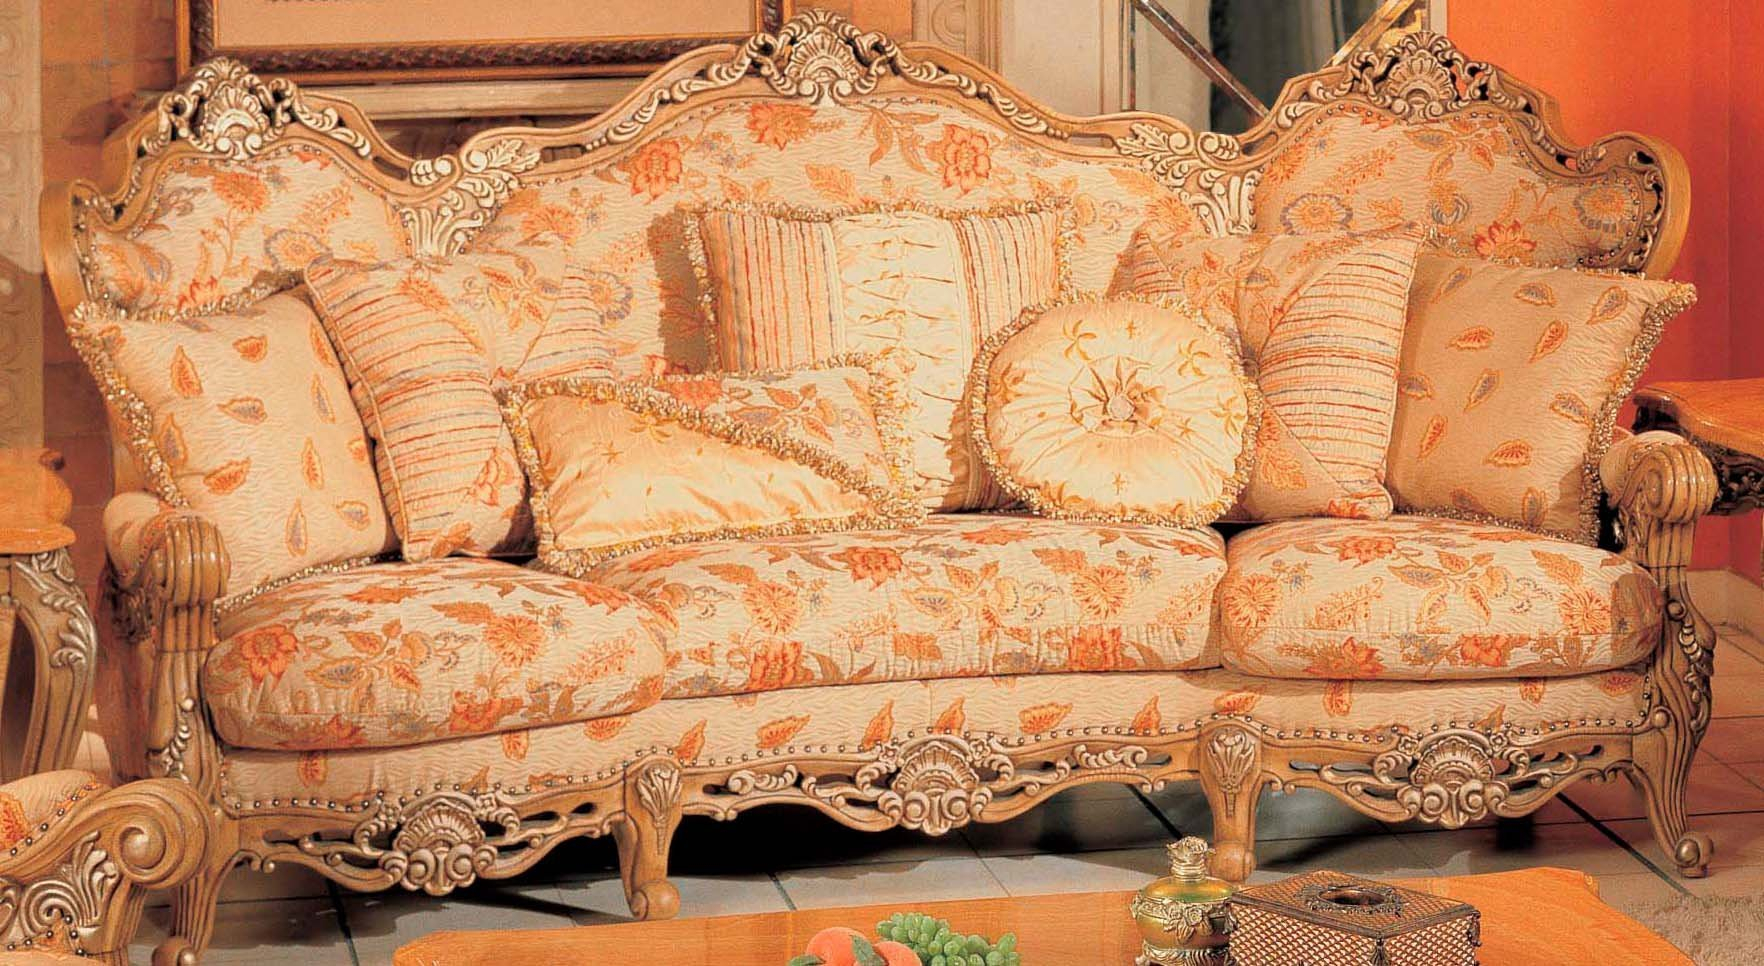 Traditional Peach Floral Print Sofa With Ornate Wood Intended For Floral Sofas And Chairs (View 15 of 15)